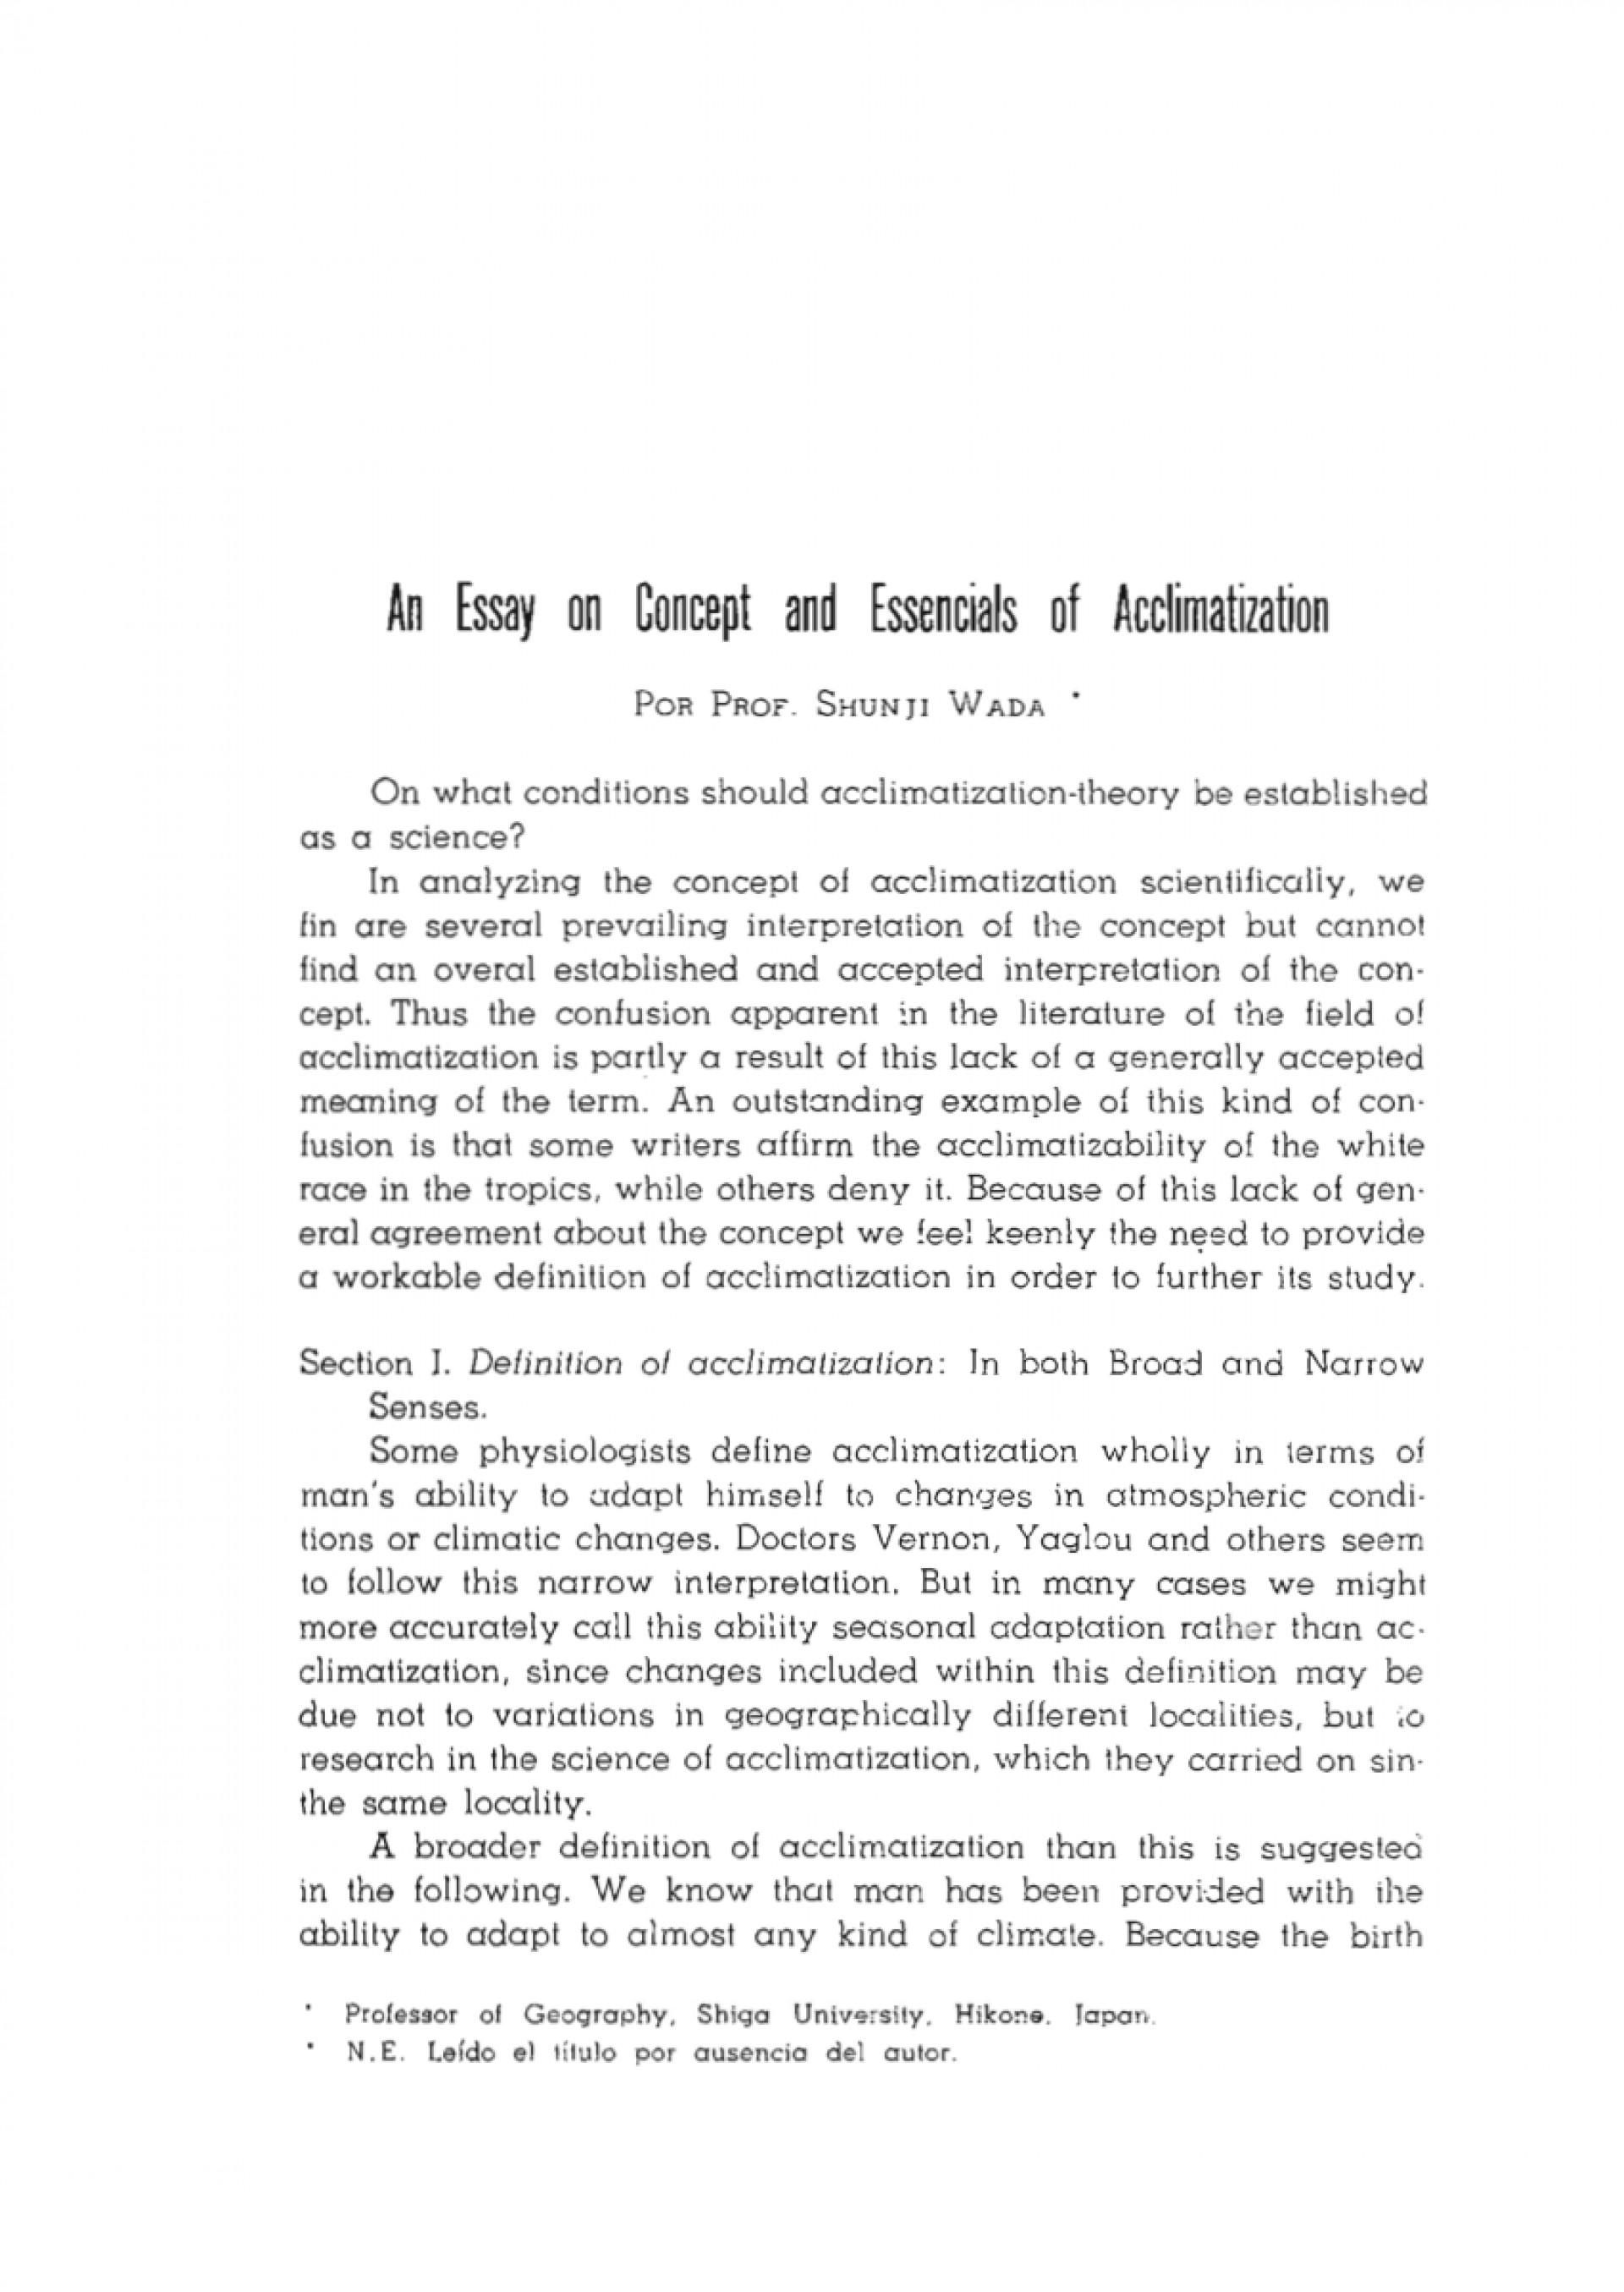 017 Concept Essay Largepreview Fearsome On Racism Paper Examples Beauty 1920